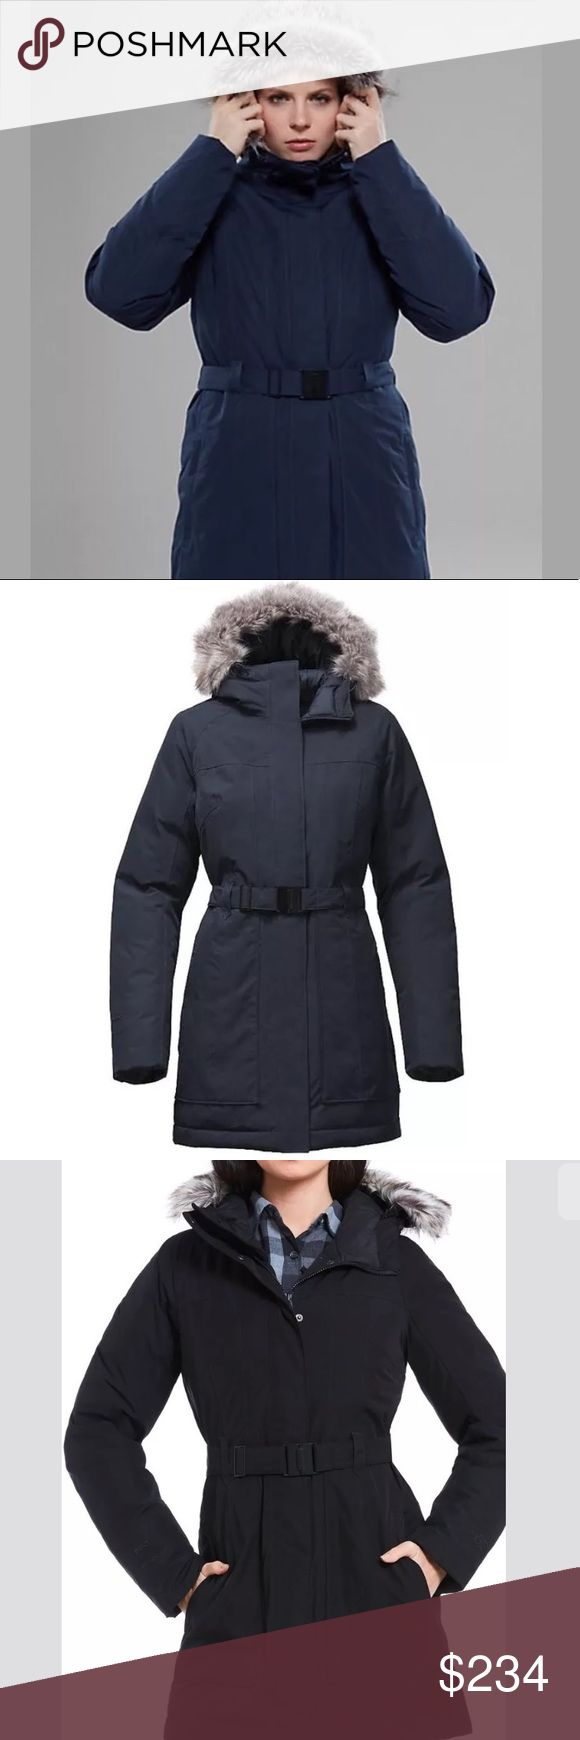 NORTH FACE NWT 2017 BROOKLYN II SIZE M DOWN PARKA Urban Navy -see all photos with descriptions The North Face Jackets & Coats Puffers